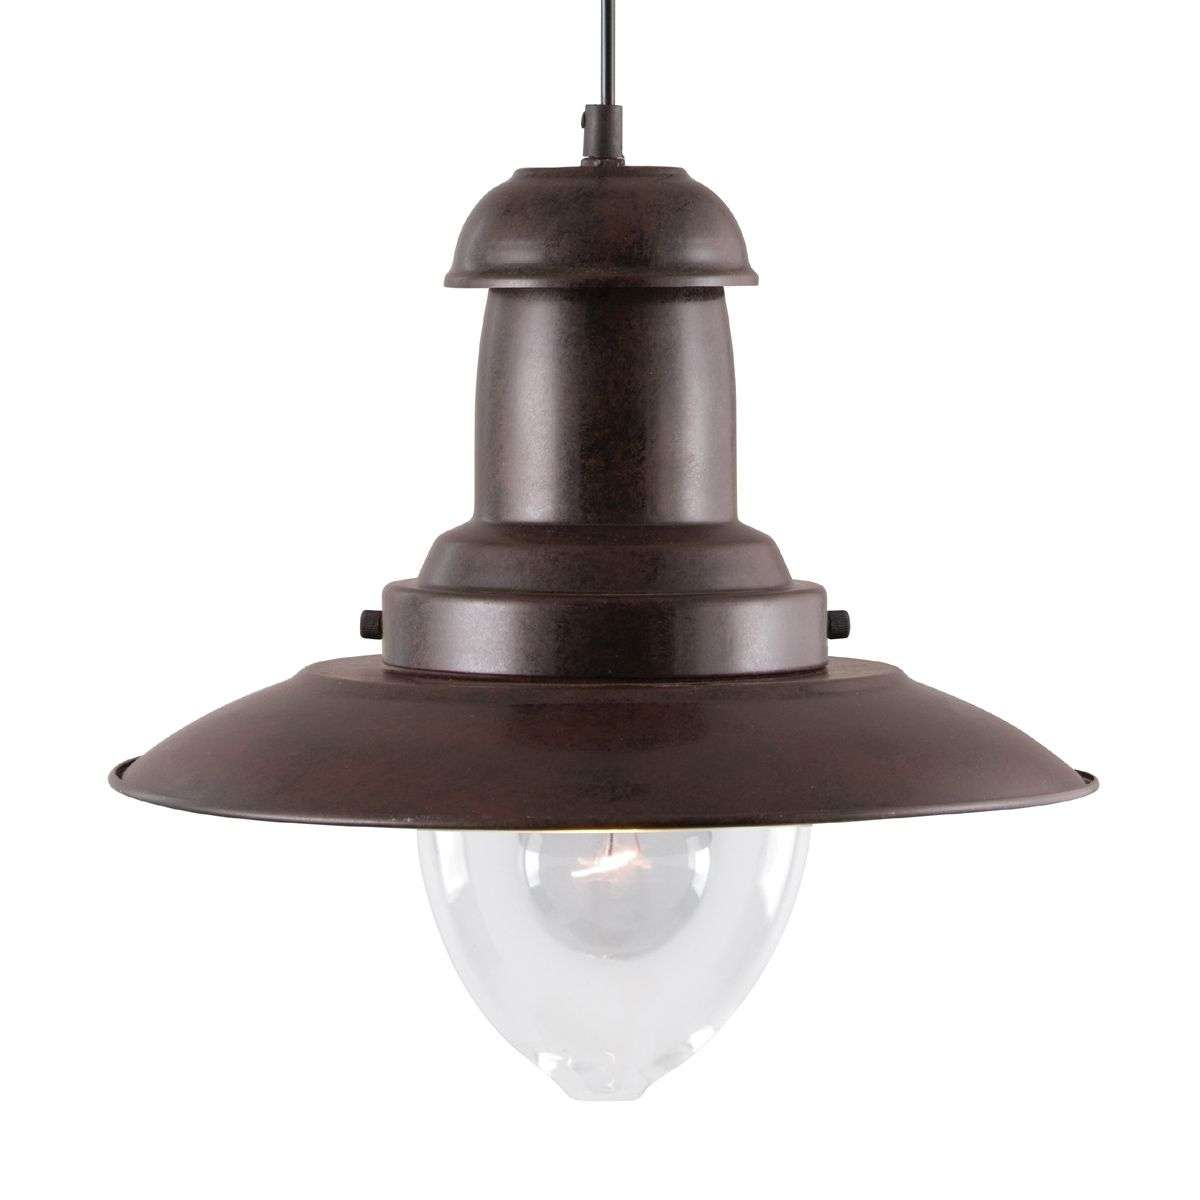 Maritime fisherman pendant lamp lights maritime fisherman pendant lamp antique brown 8570128 31 aloadofball Image collections